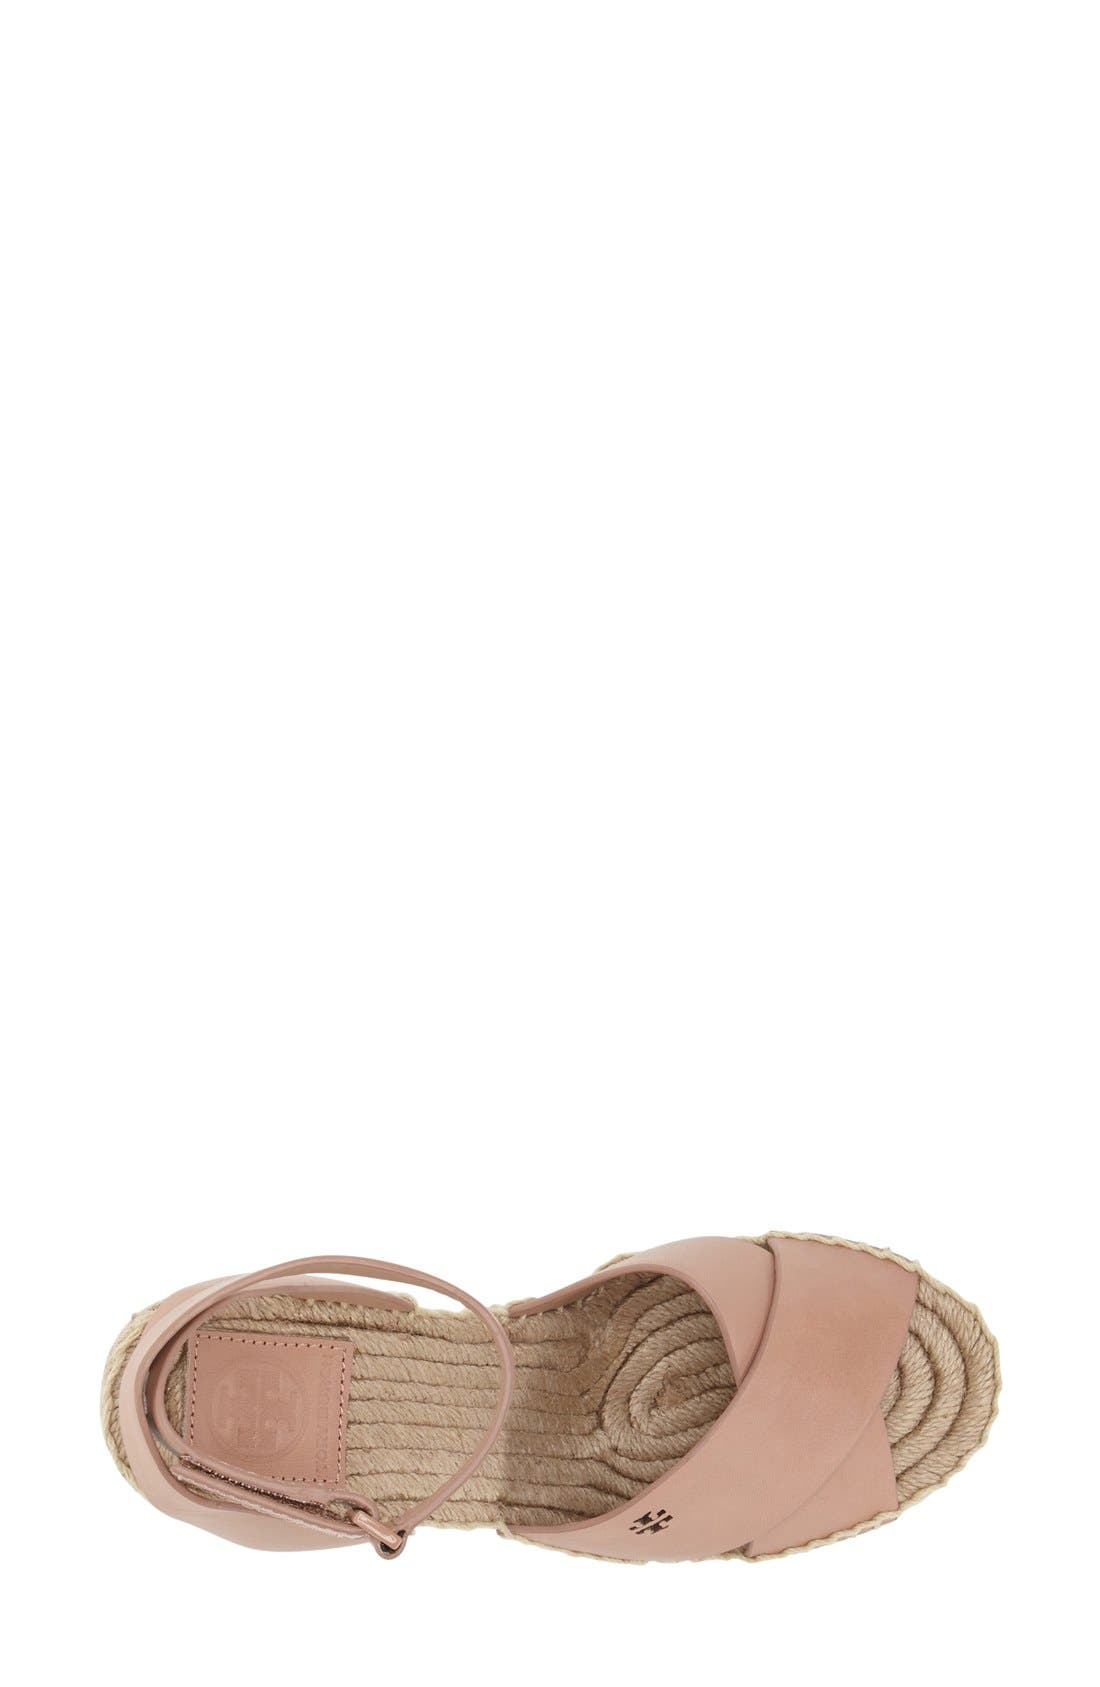 Alternate Image 3  - Tory Burch 'Bima' Espadrille Wedge (Women)